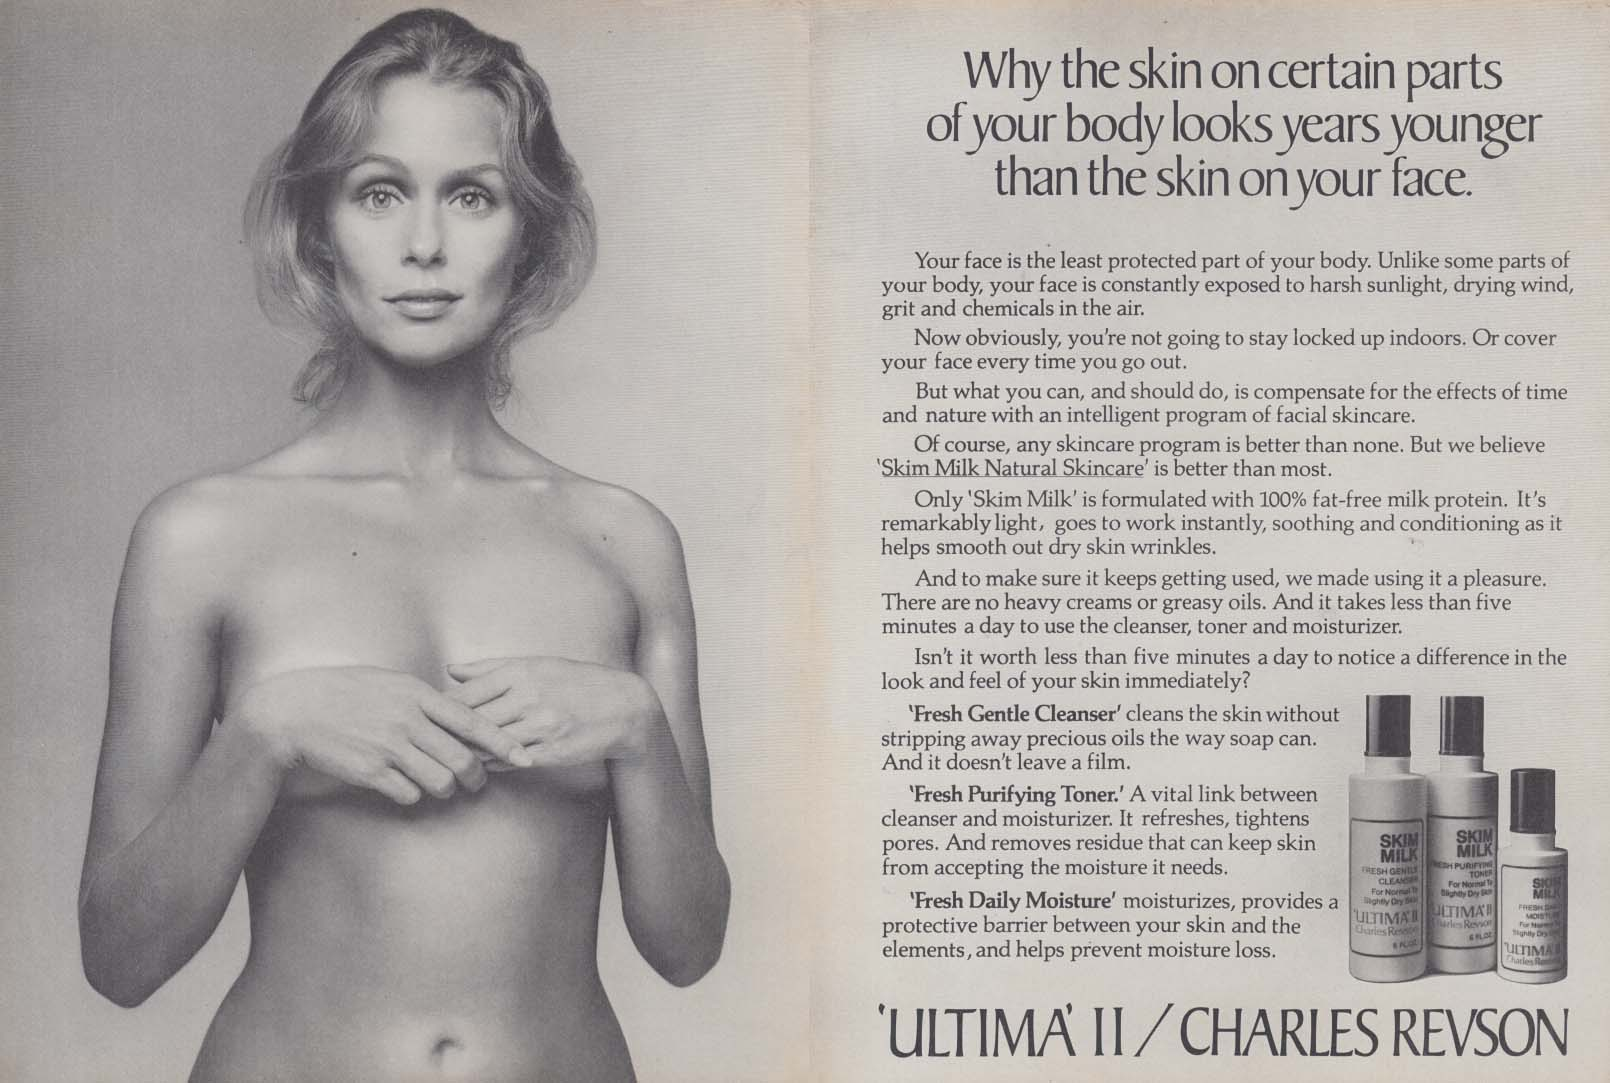 Why the skin looks years younger Ultima II makeup ad 1974 Lauren Hutton topless